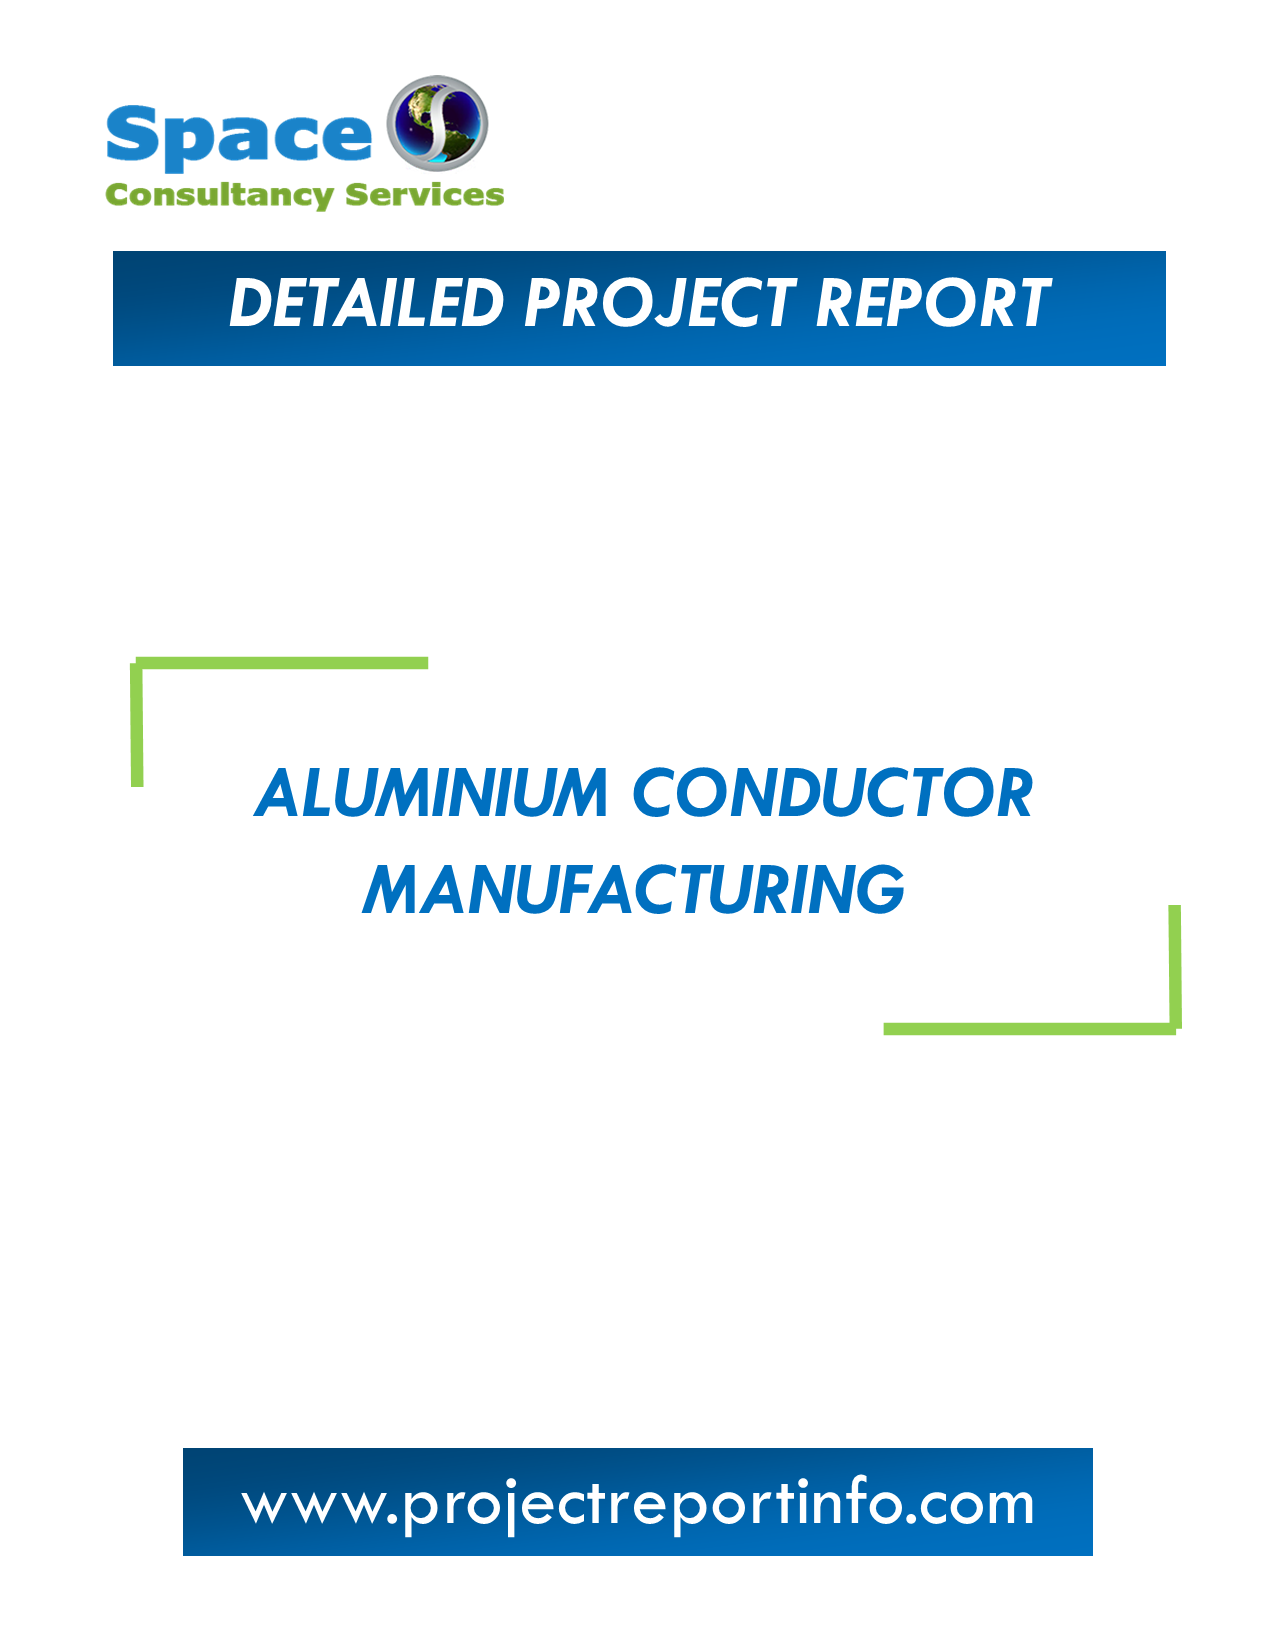 Project Report on Aluminium Conductor Manufacturing